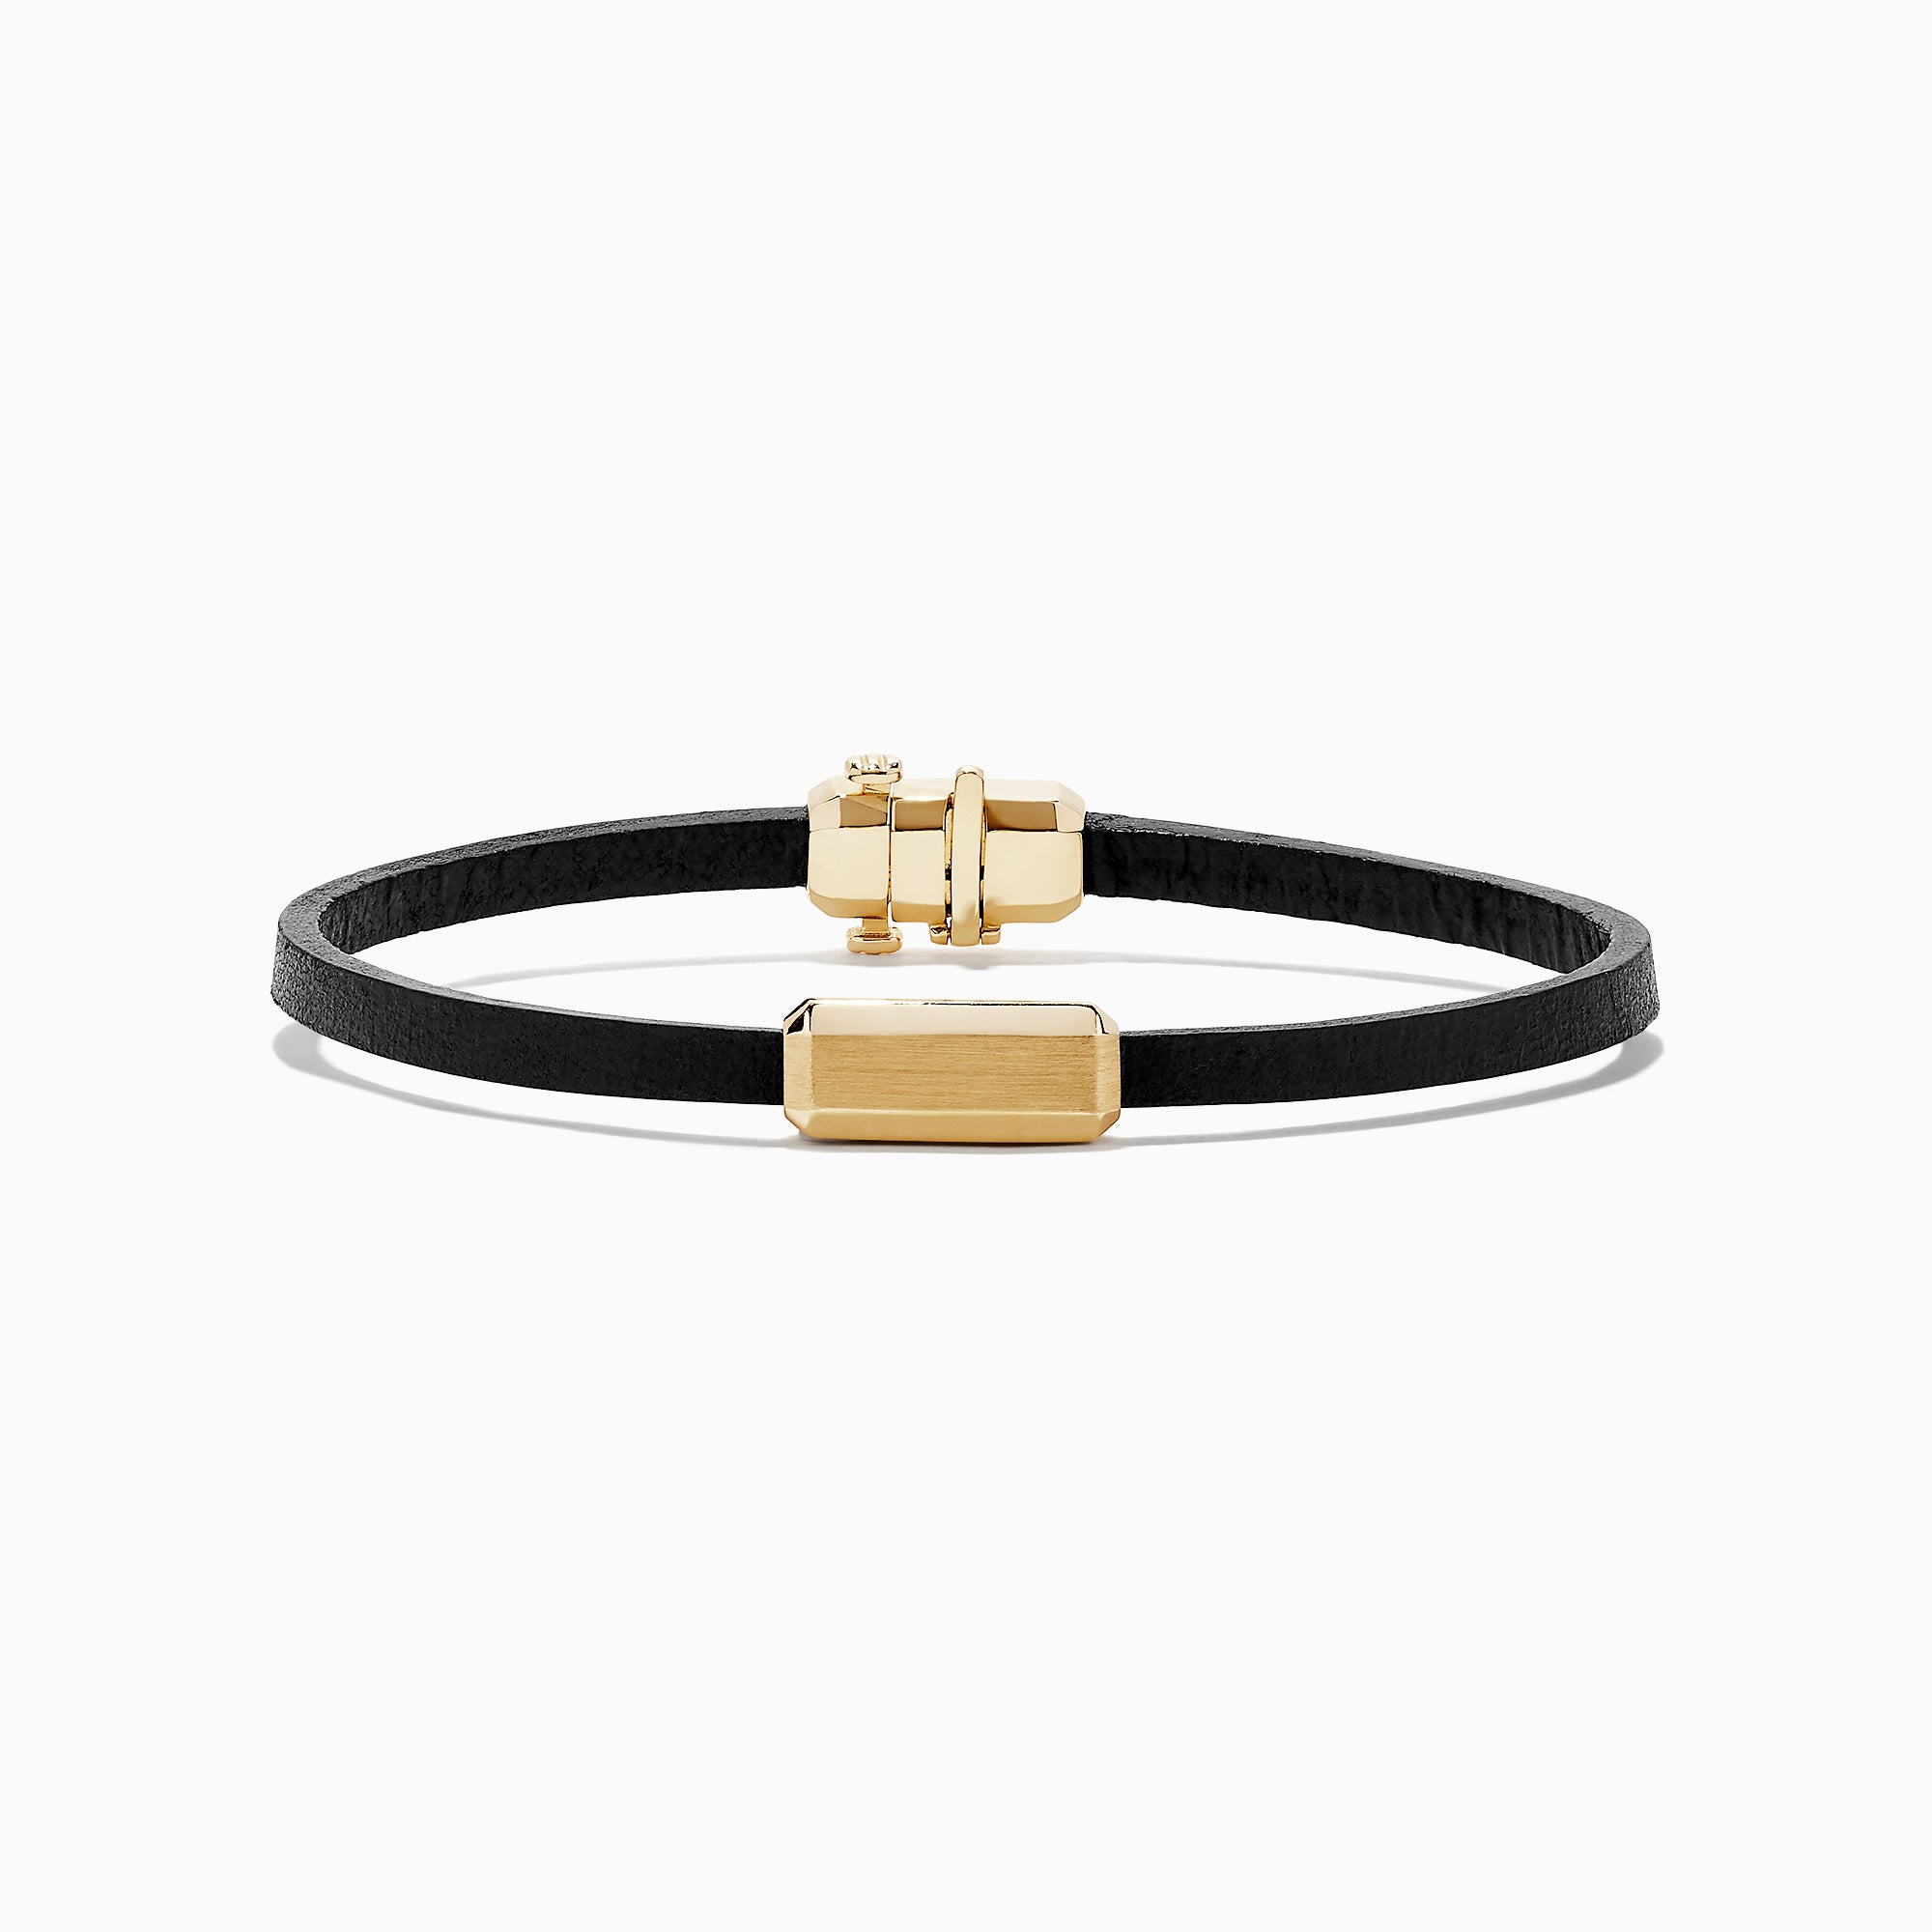 Effy Men's 14K Yellow Gold Leather Bracelet